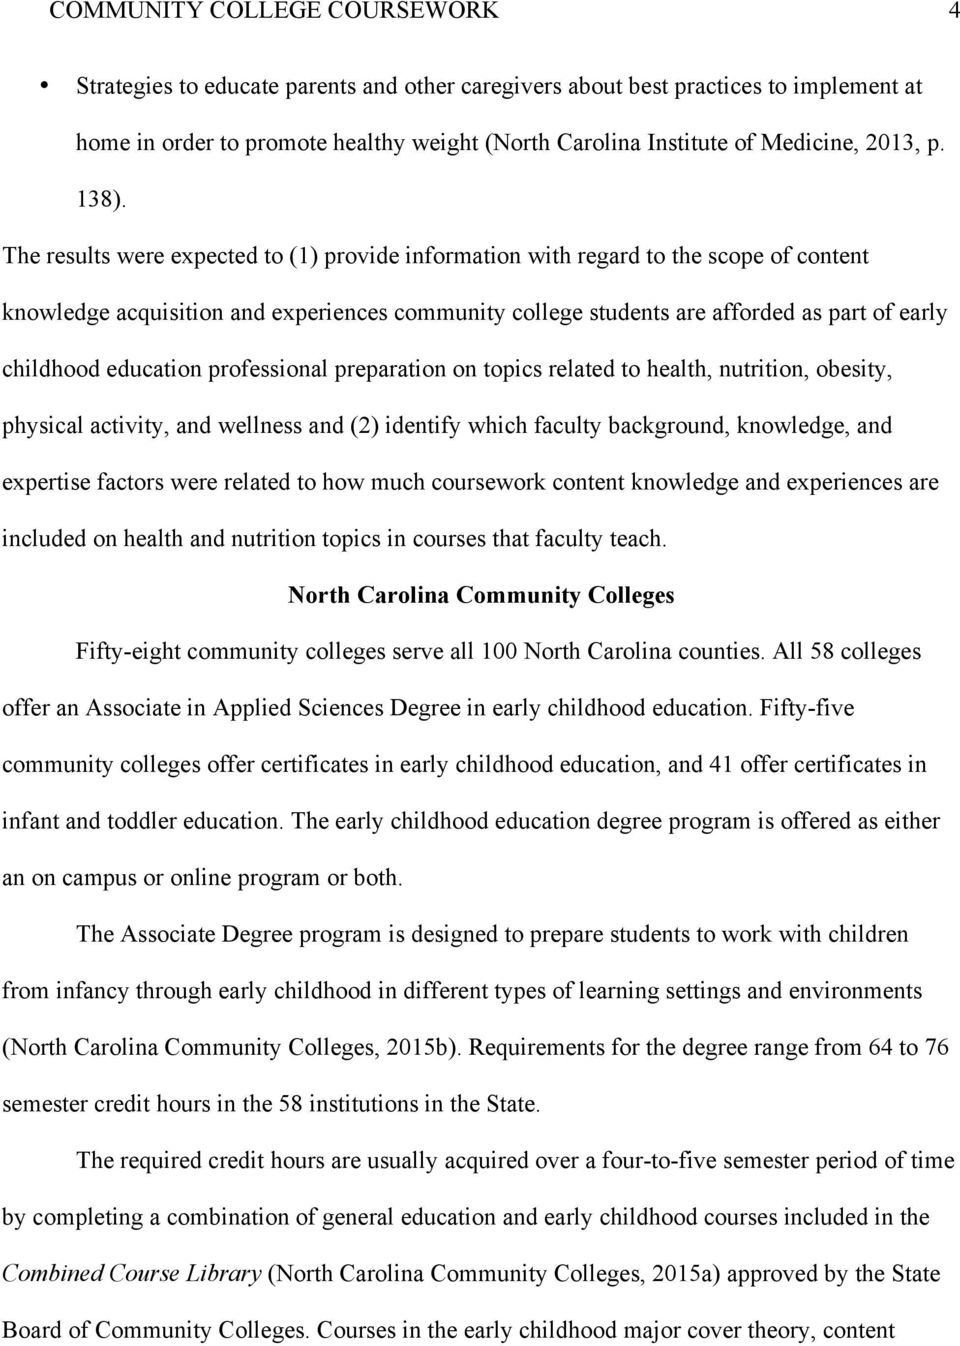 The results were expected to (1) provide information with regard to the scope of content knowledge acquisition and experiences community college students are afforded as part of early childhood